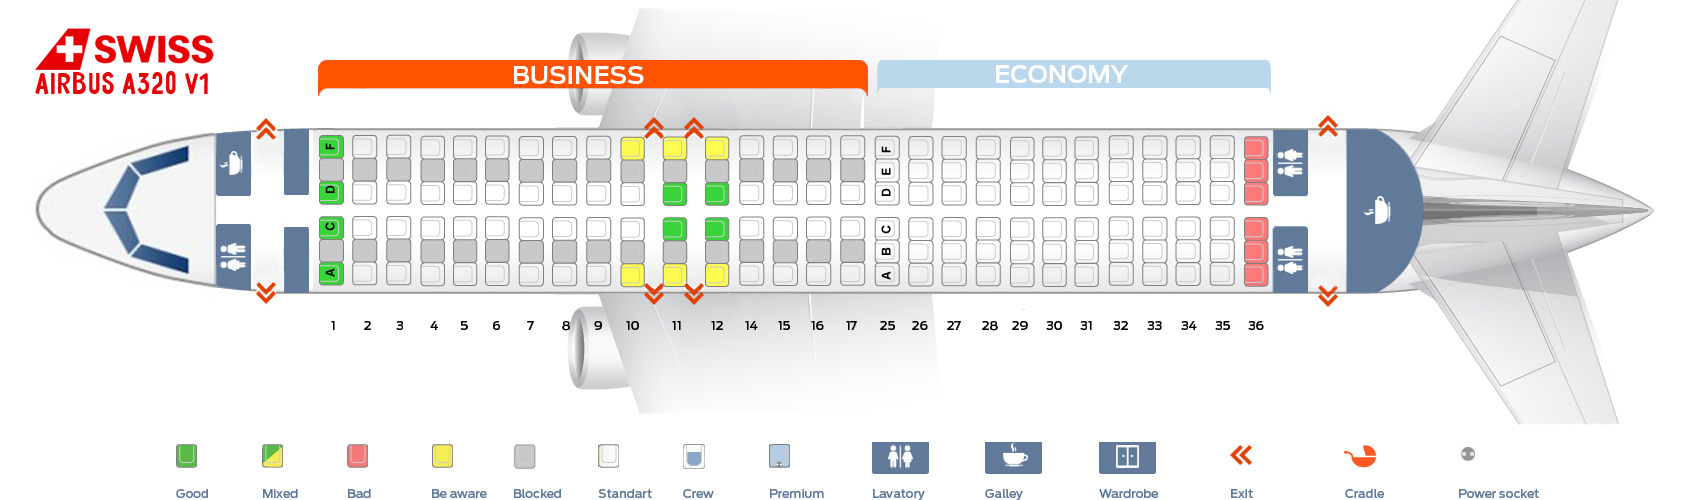 A320 Seat Map Seat map Airbus A320 200 Swiss Airlines. Best seats in plane